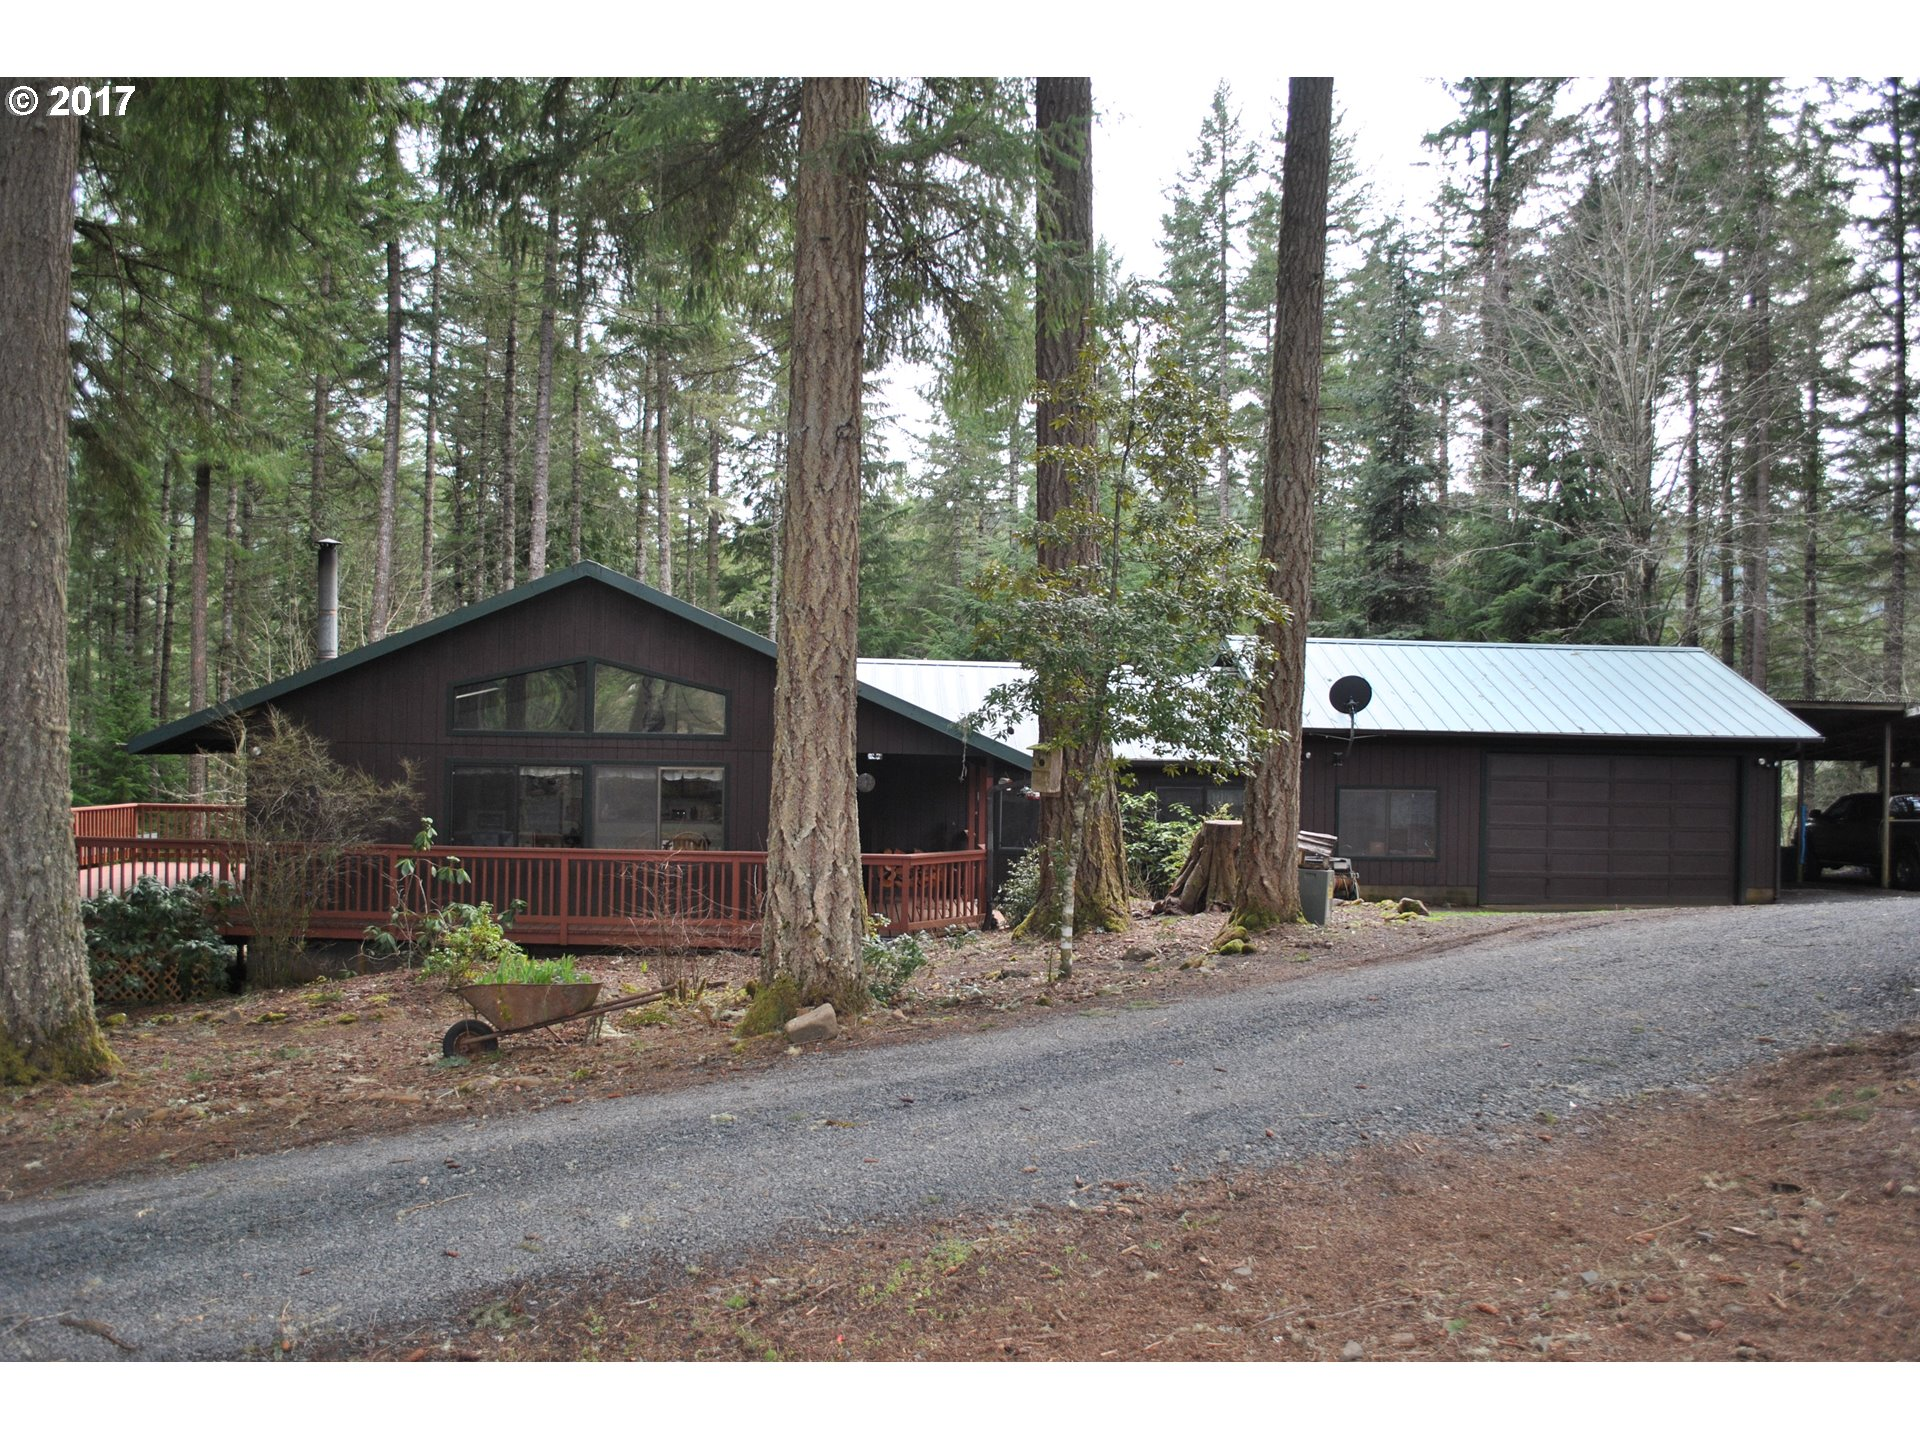 35194 PERKINS CREEK RD, Cottage Grove, OR 97424